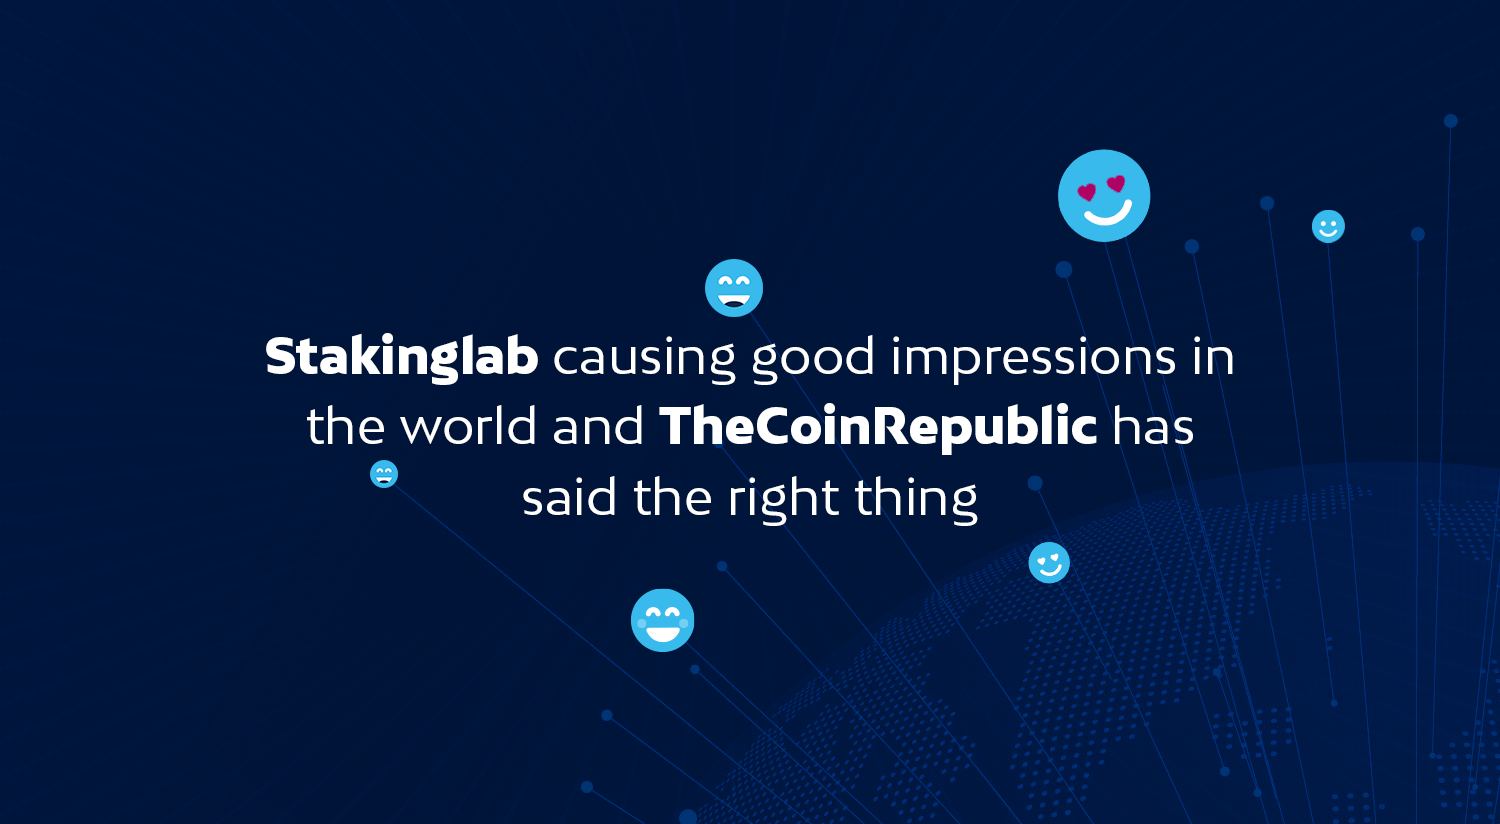 Stakinglab causing good impressions in the world and TheCoinRepublic confirmed